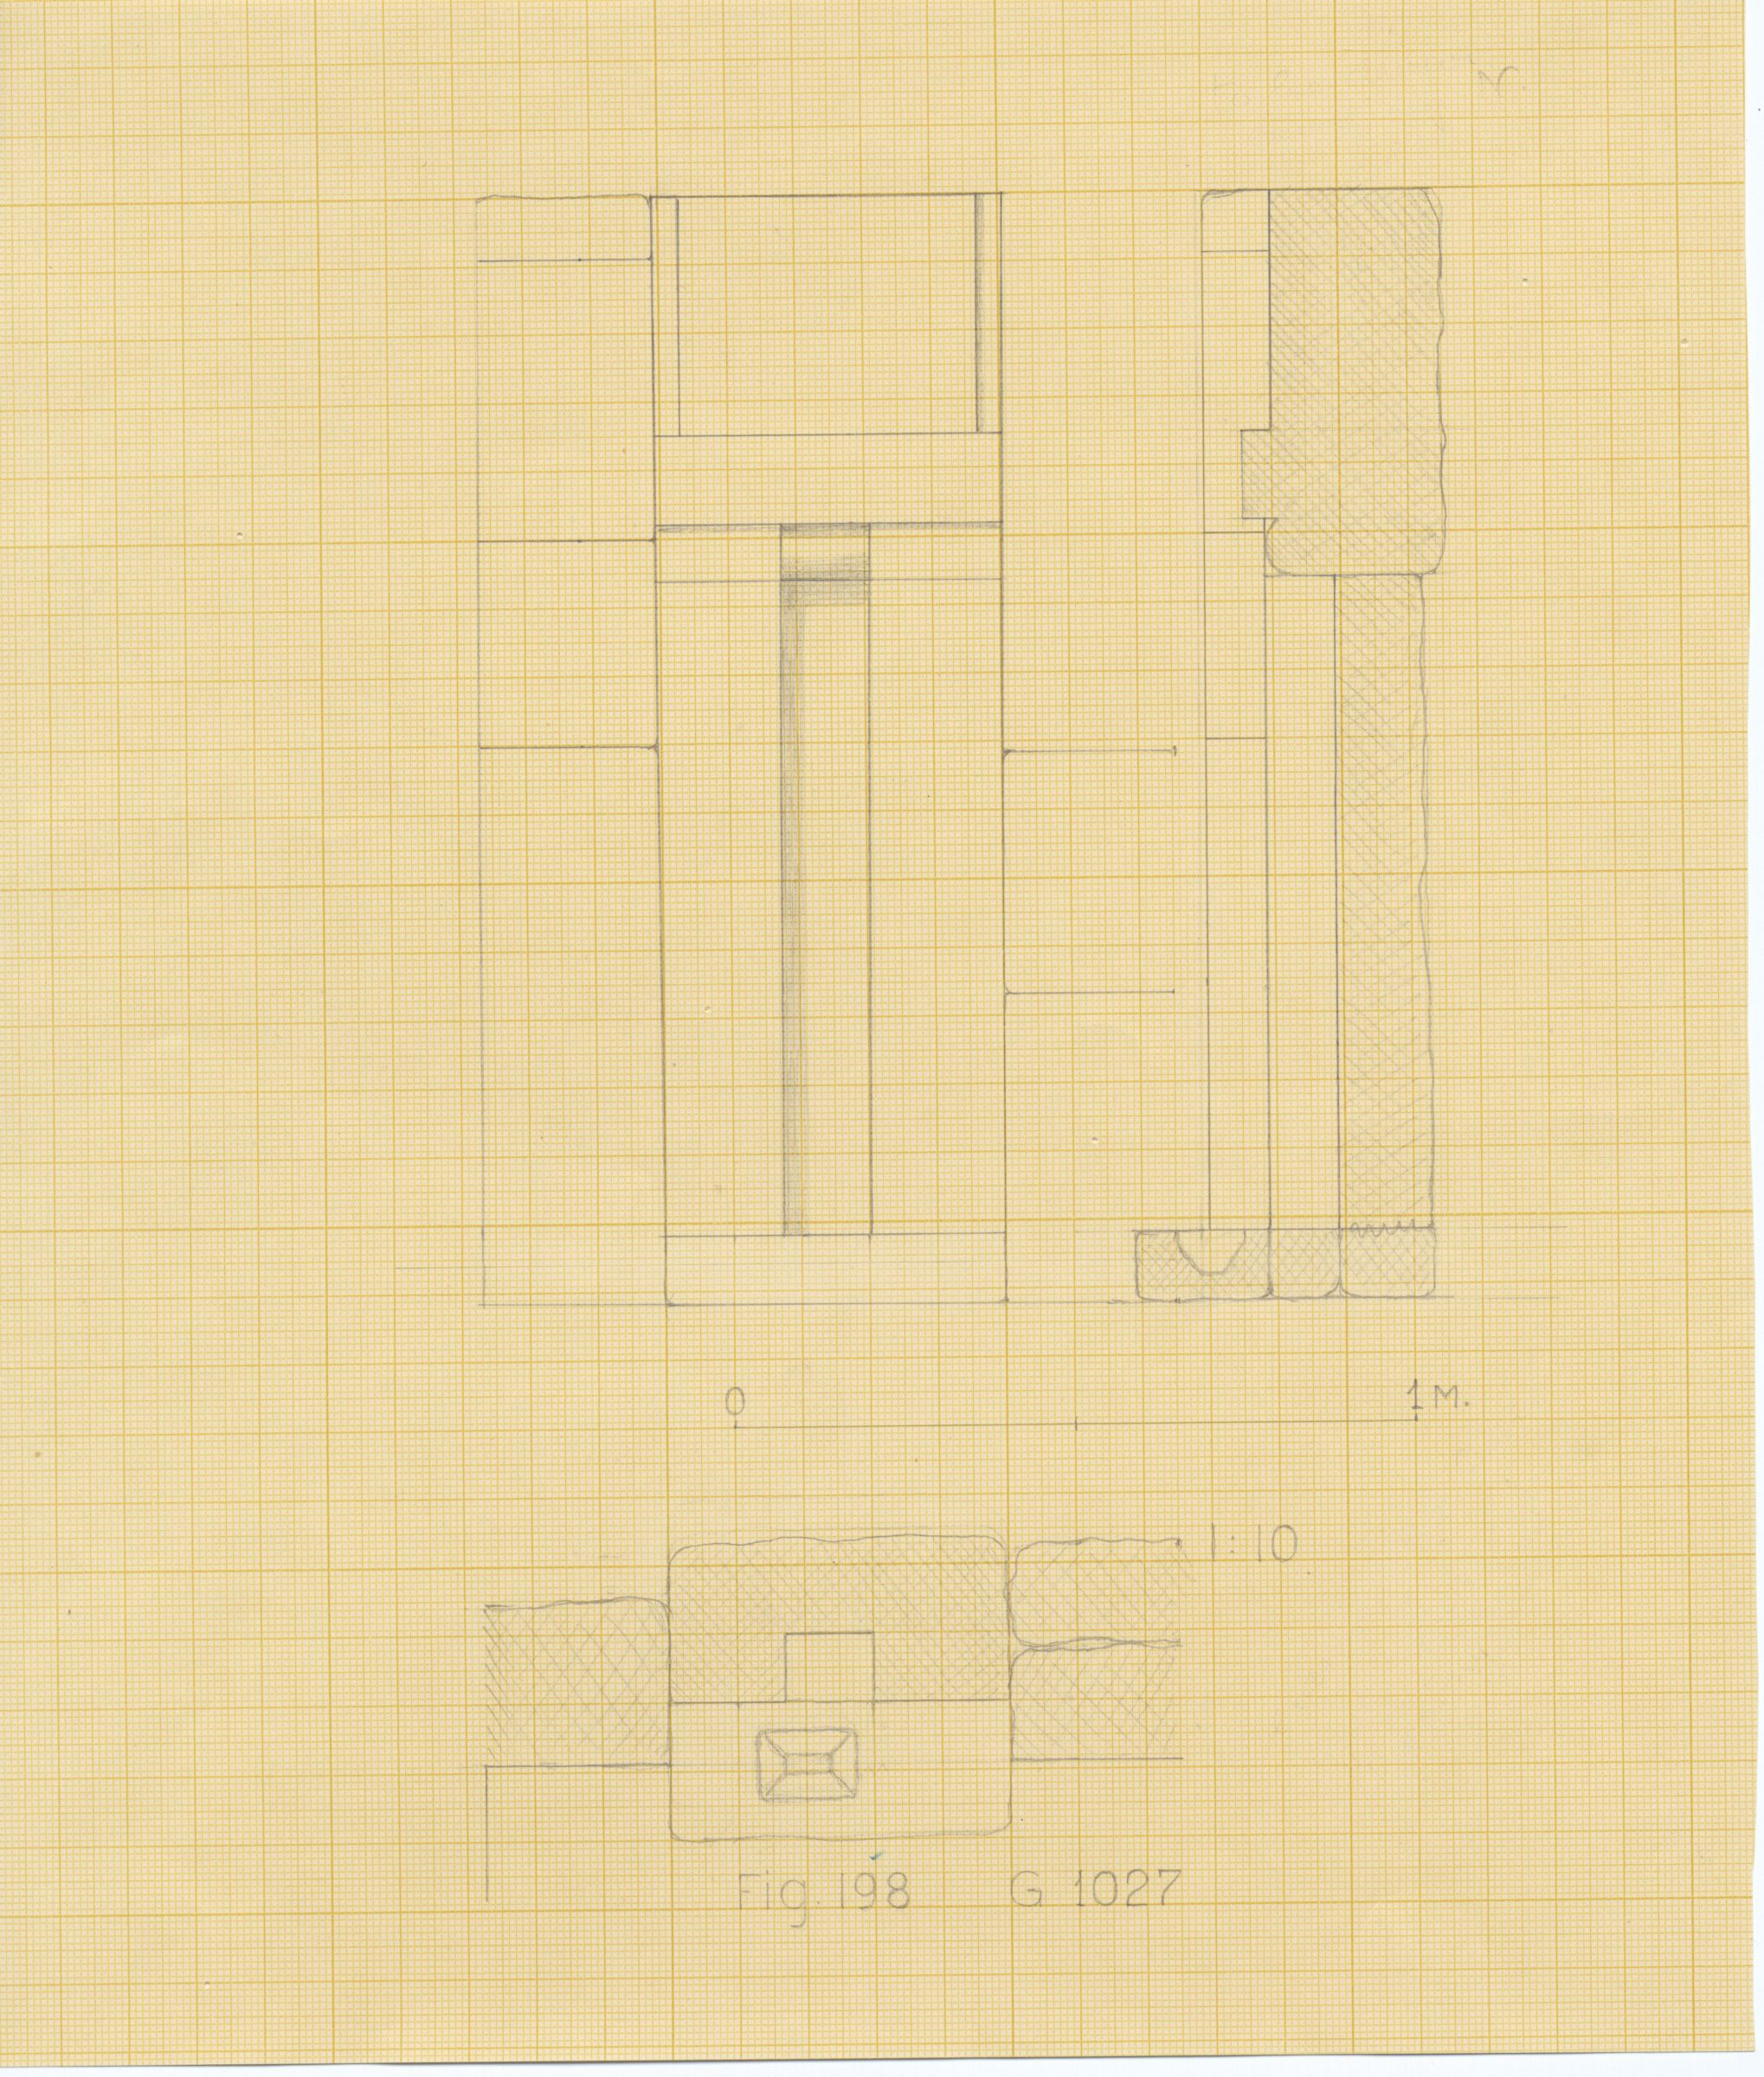 Maps and plans: G 1027, Plan, section, and elevation of false door